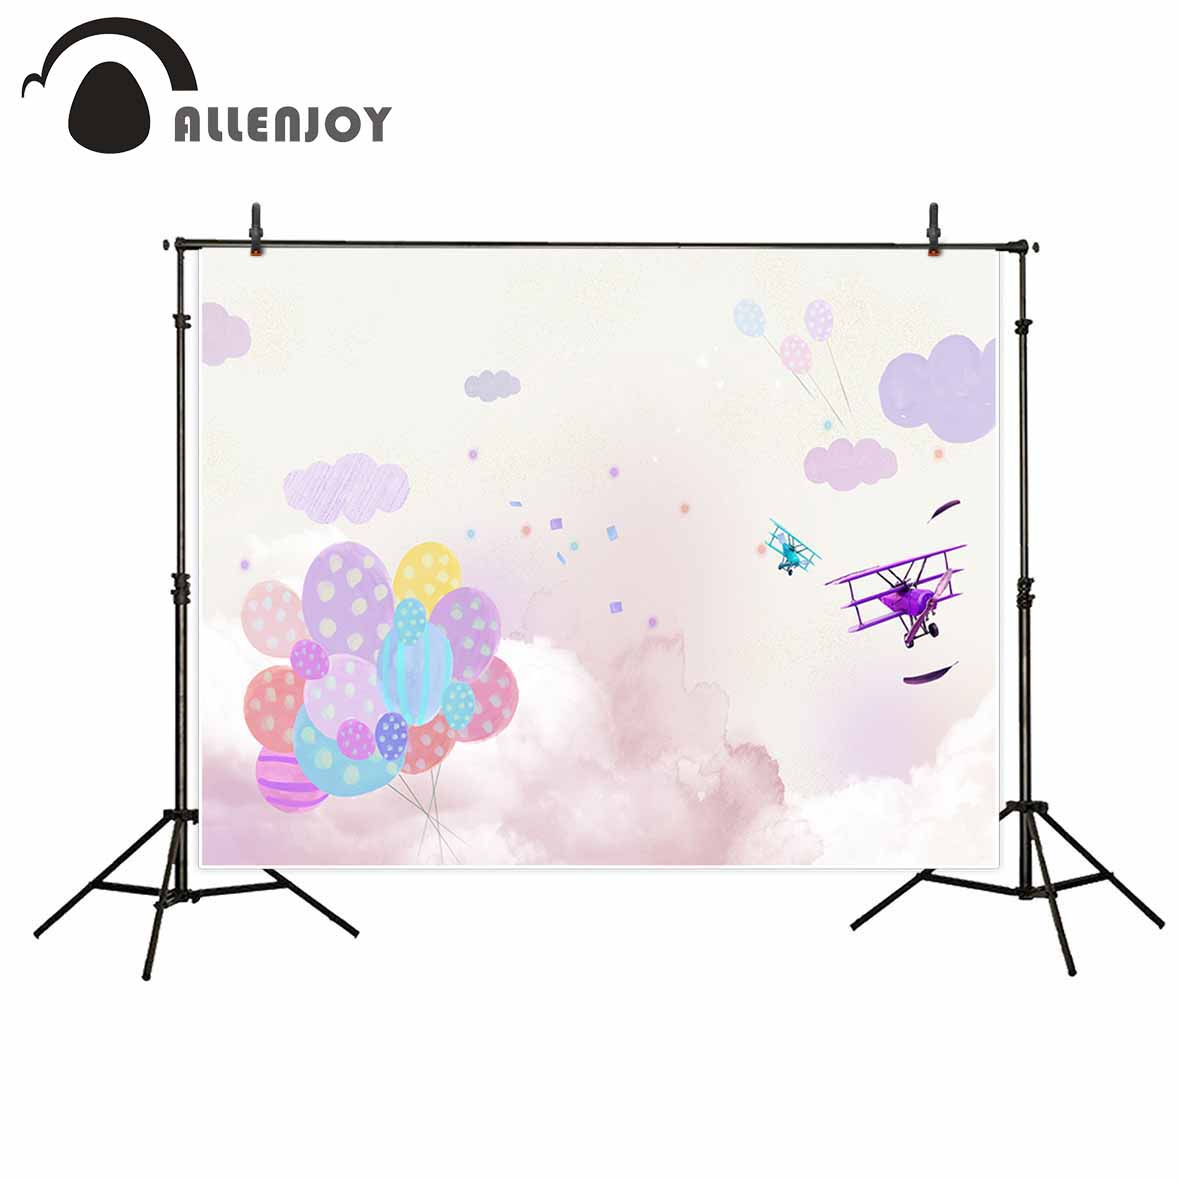 Allenjoy Balloon airplane sky cloud birthday party background decorations for home camera photographic professional